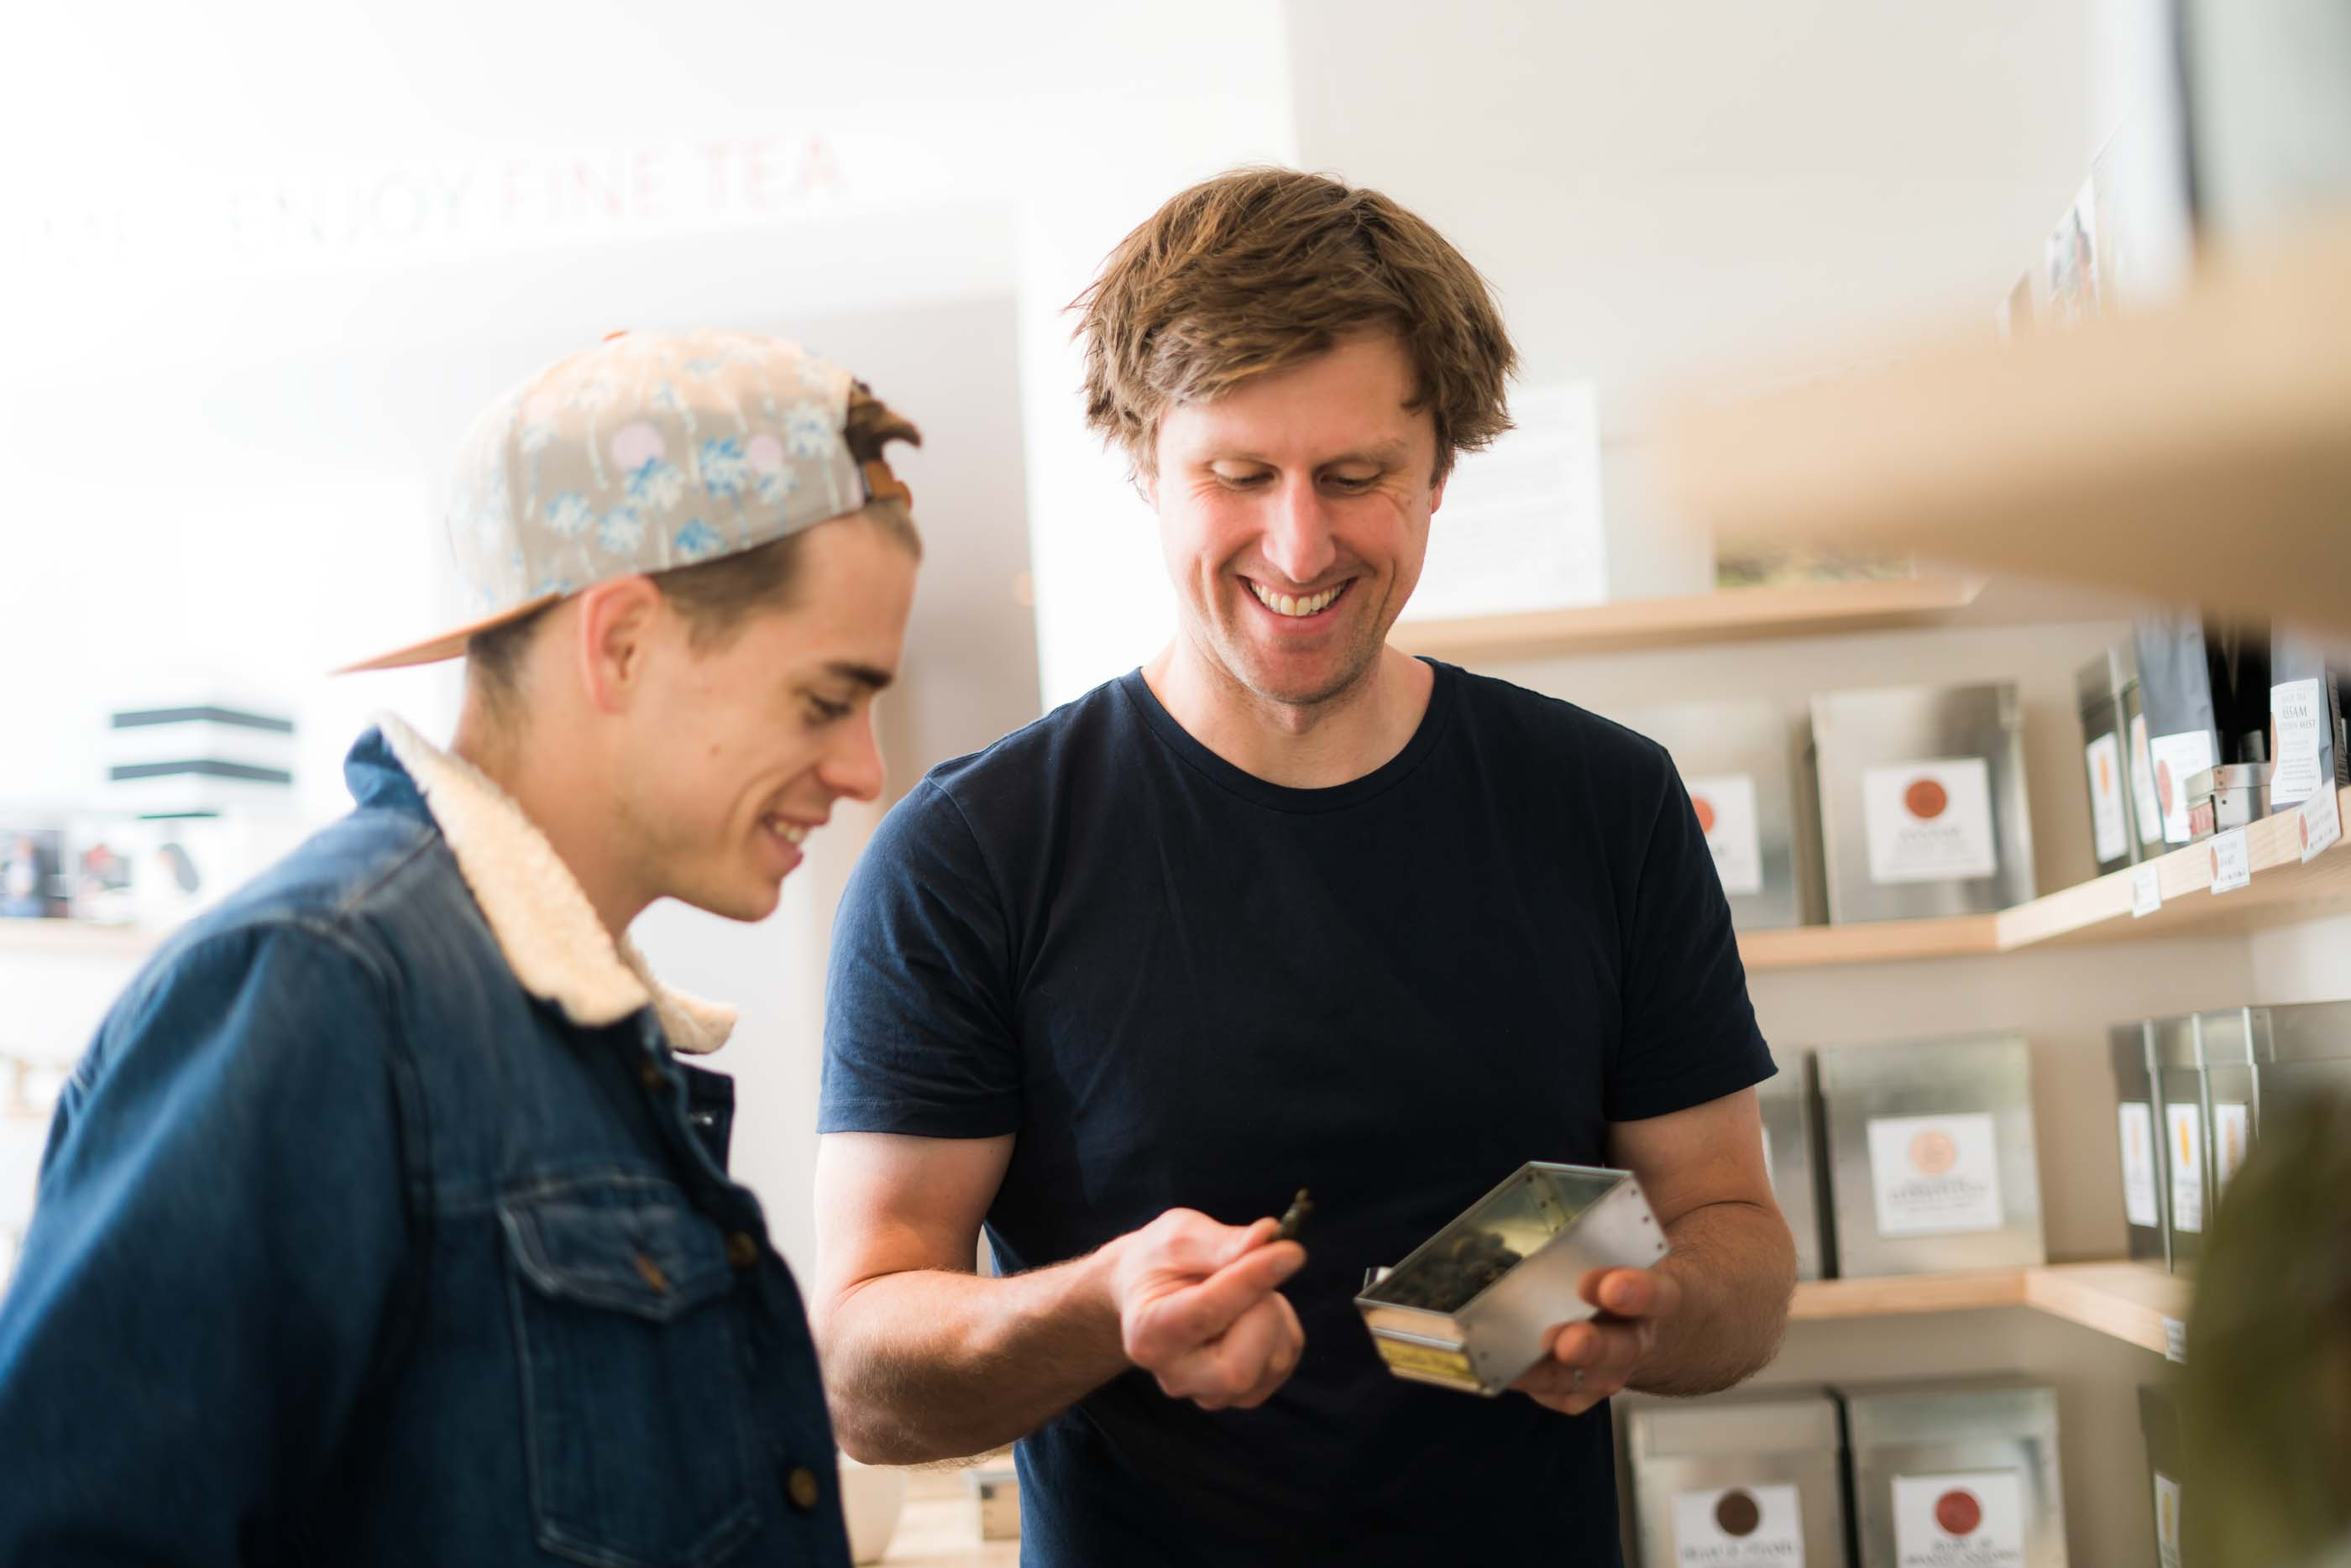 A Pixie business owner showing a product to a customer.